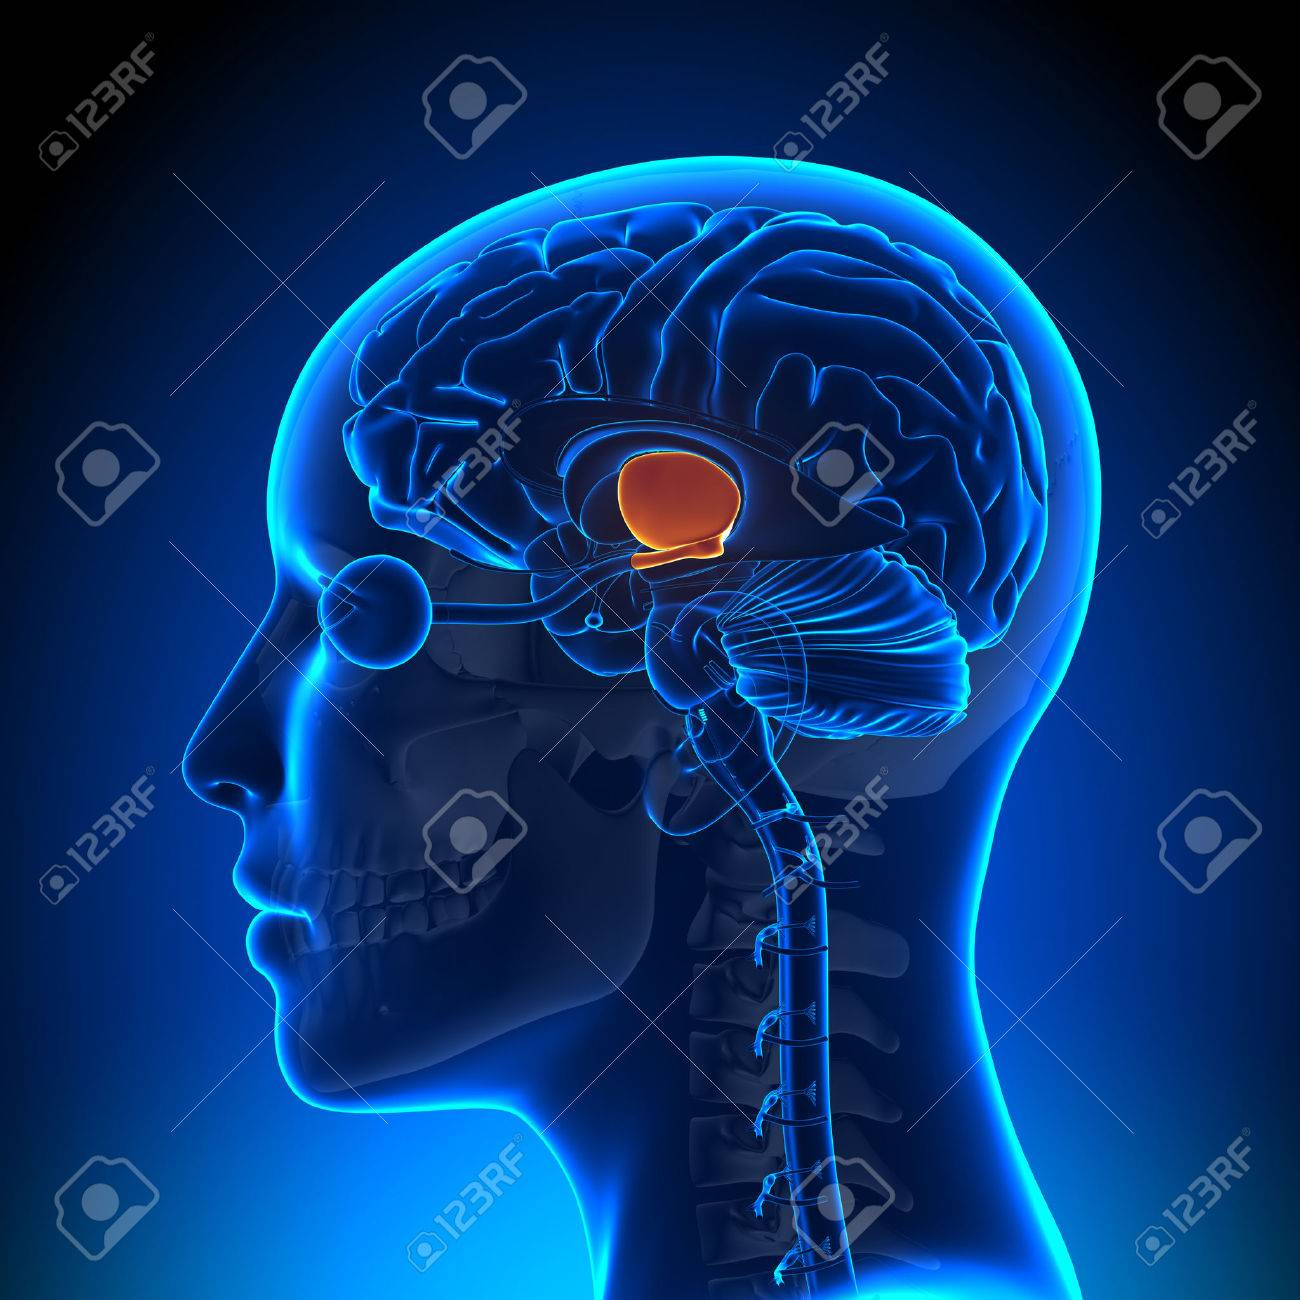 Hypothalamus - Female Brain Anatomy Stock Photo, Picture And Royalty ...